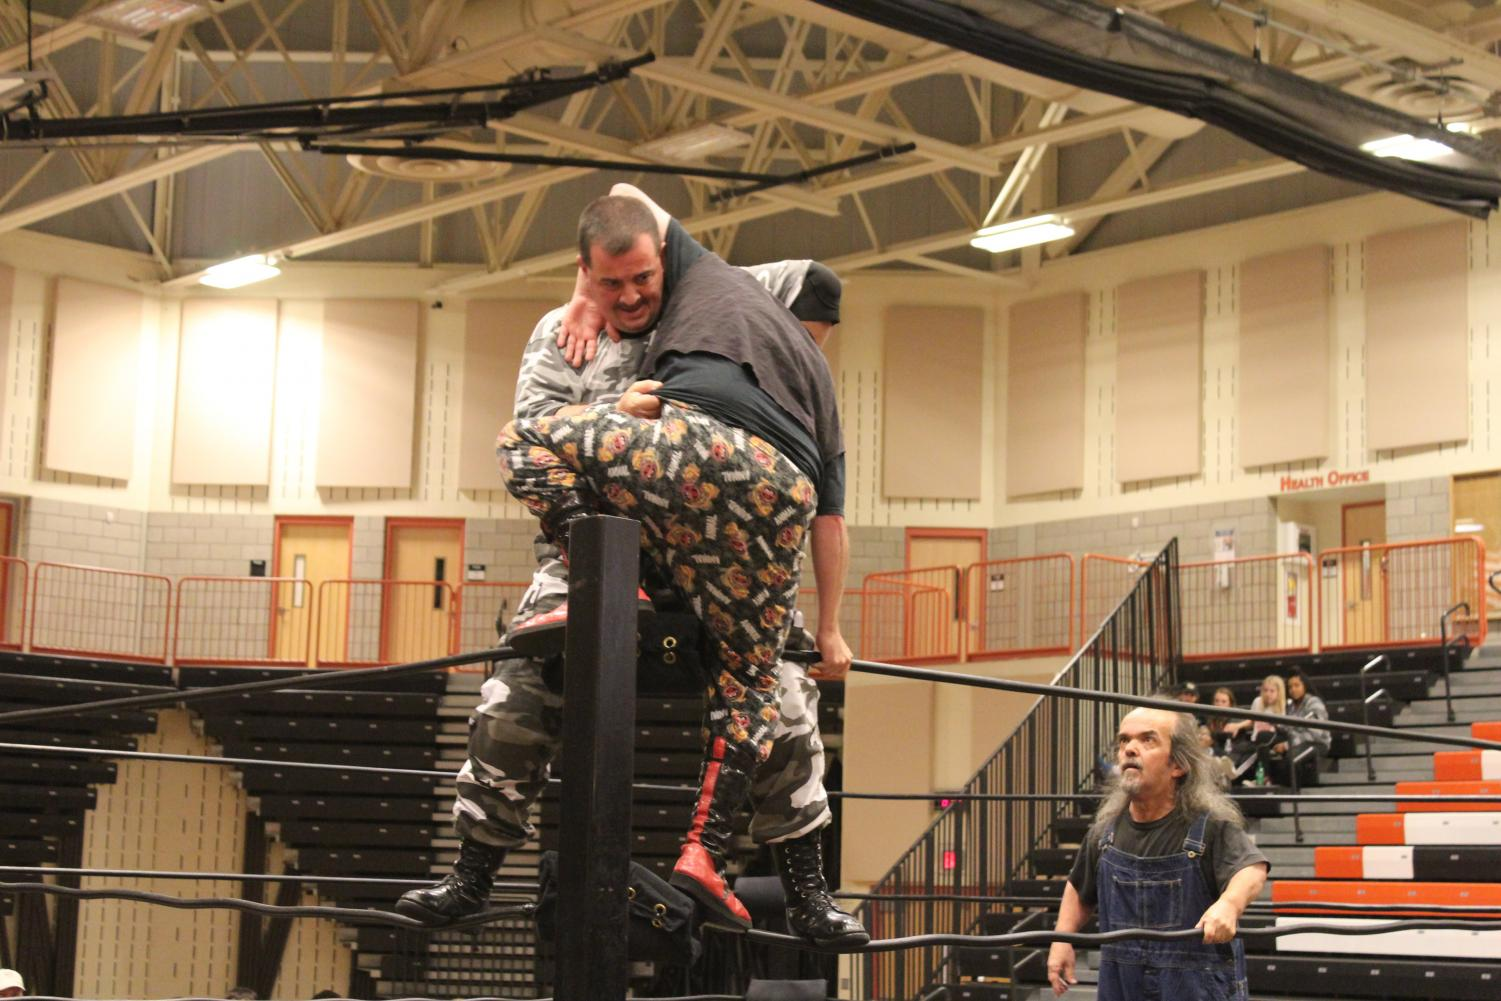 The Sniper prepares to suplex his opponent at The Main Event Saturday, Nov. 18.